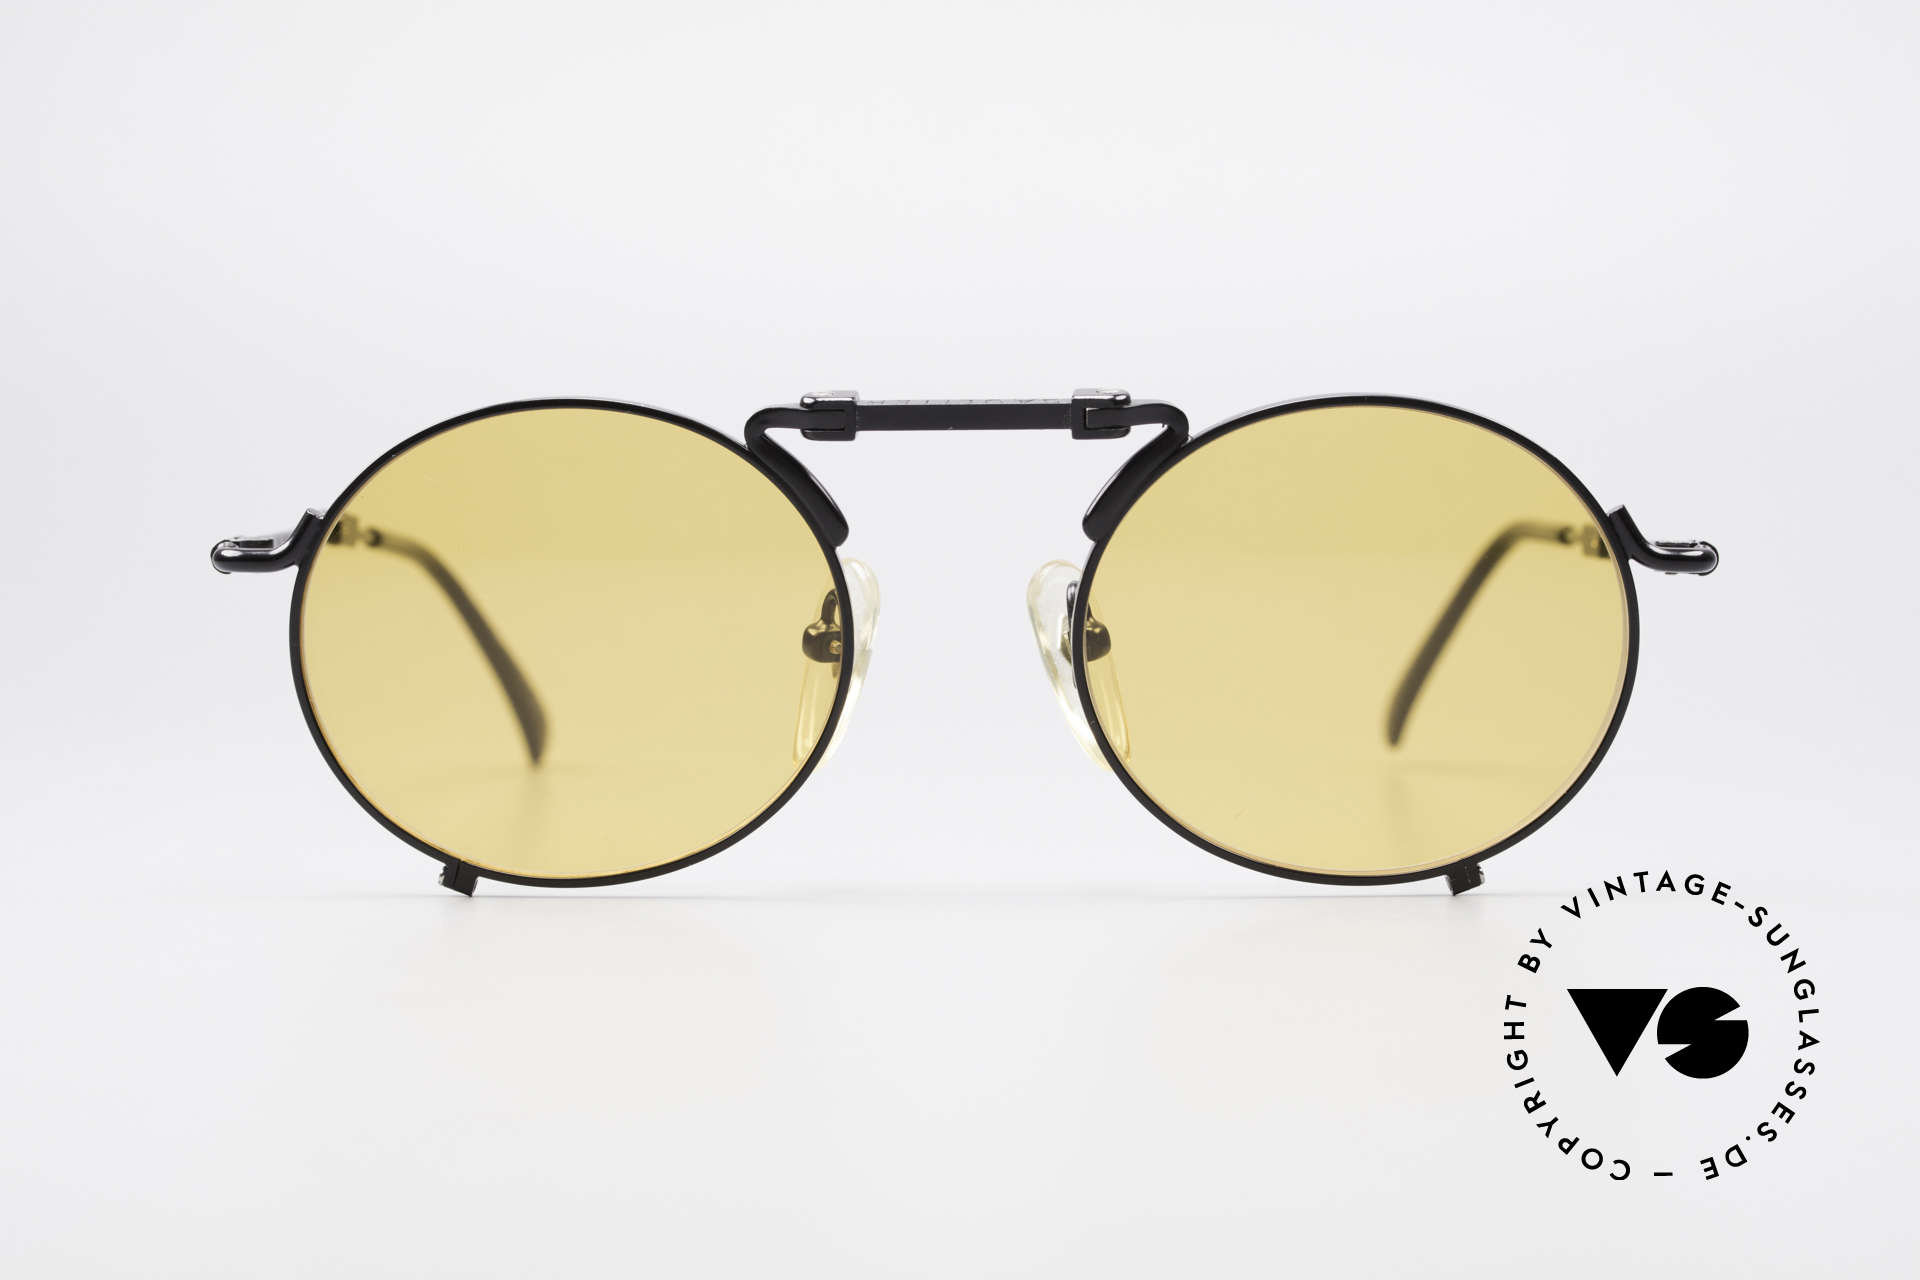 Jean Paul Gaultier 56-9171 90's Vintage Folding Sunglasses, practical folding model in great quality (rarity), Made for Men and Women